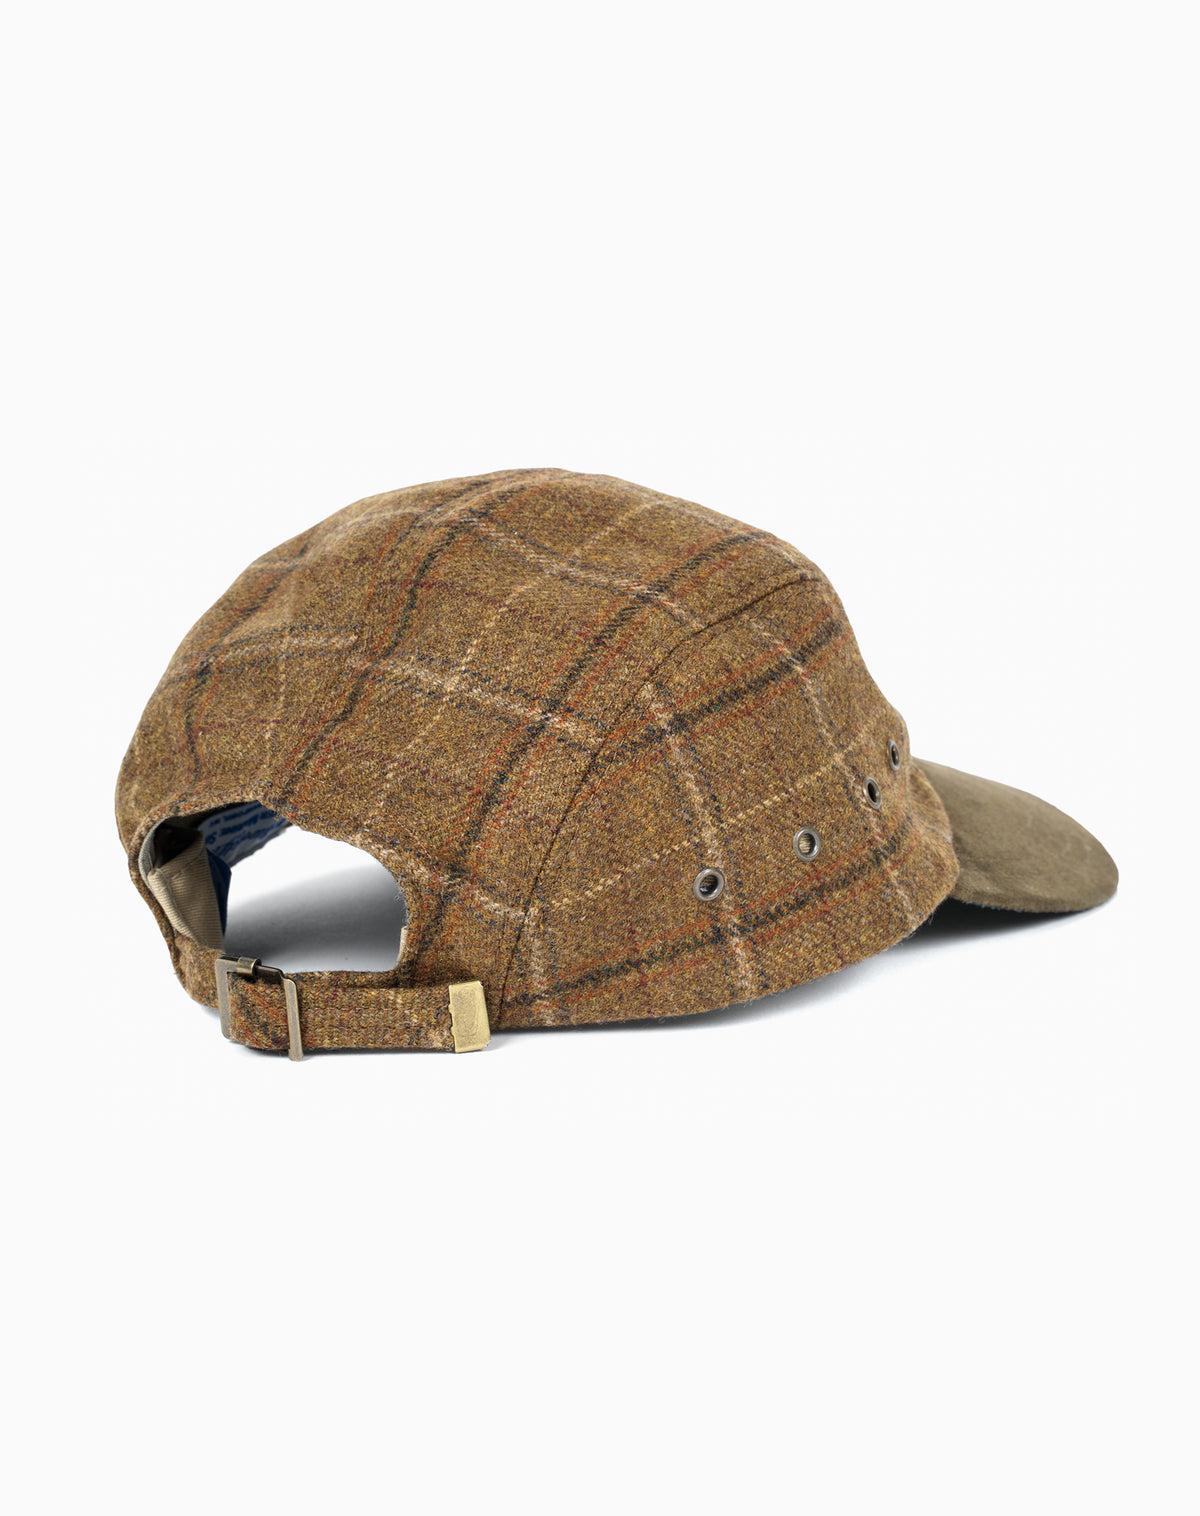 Swordfish in Plaid Wool with Suede Brim